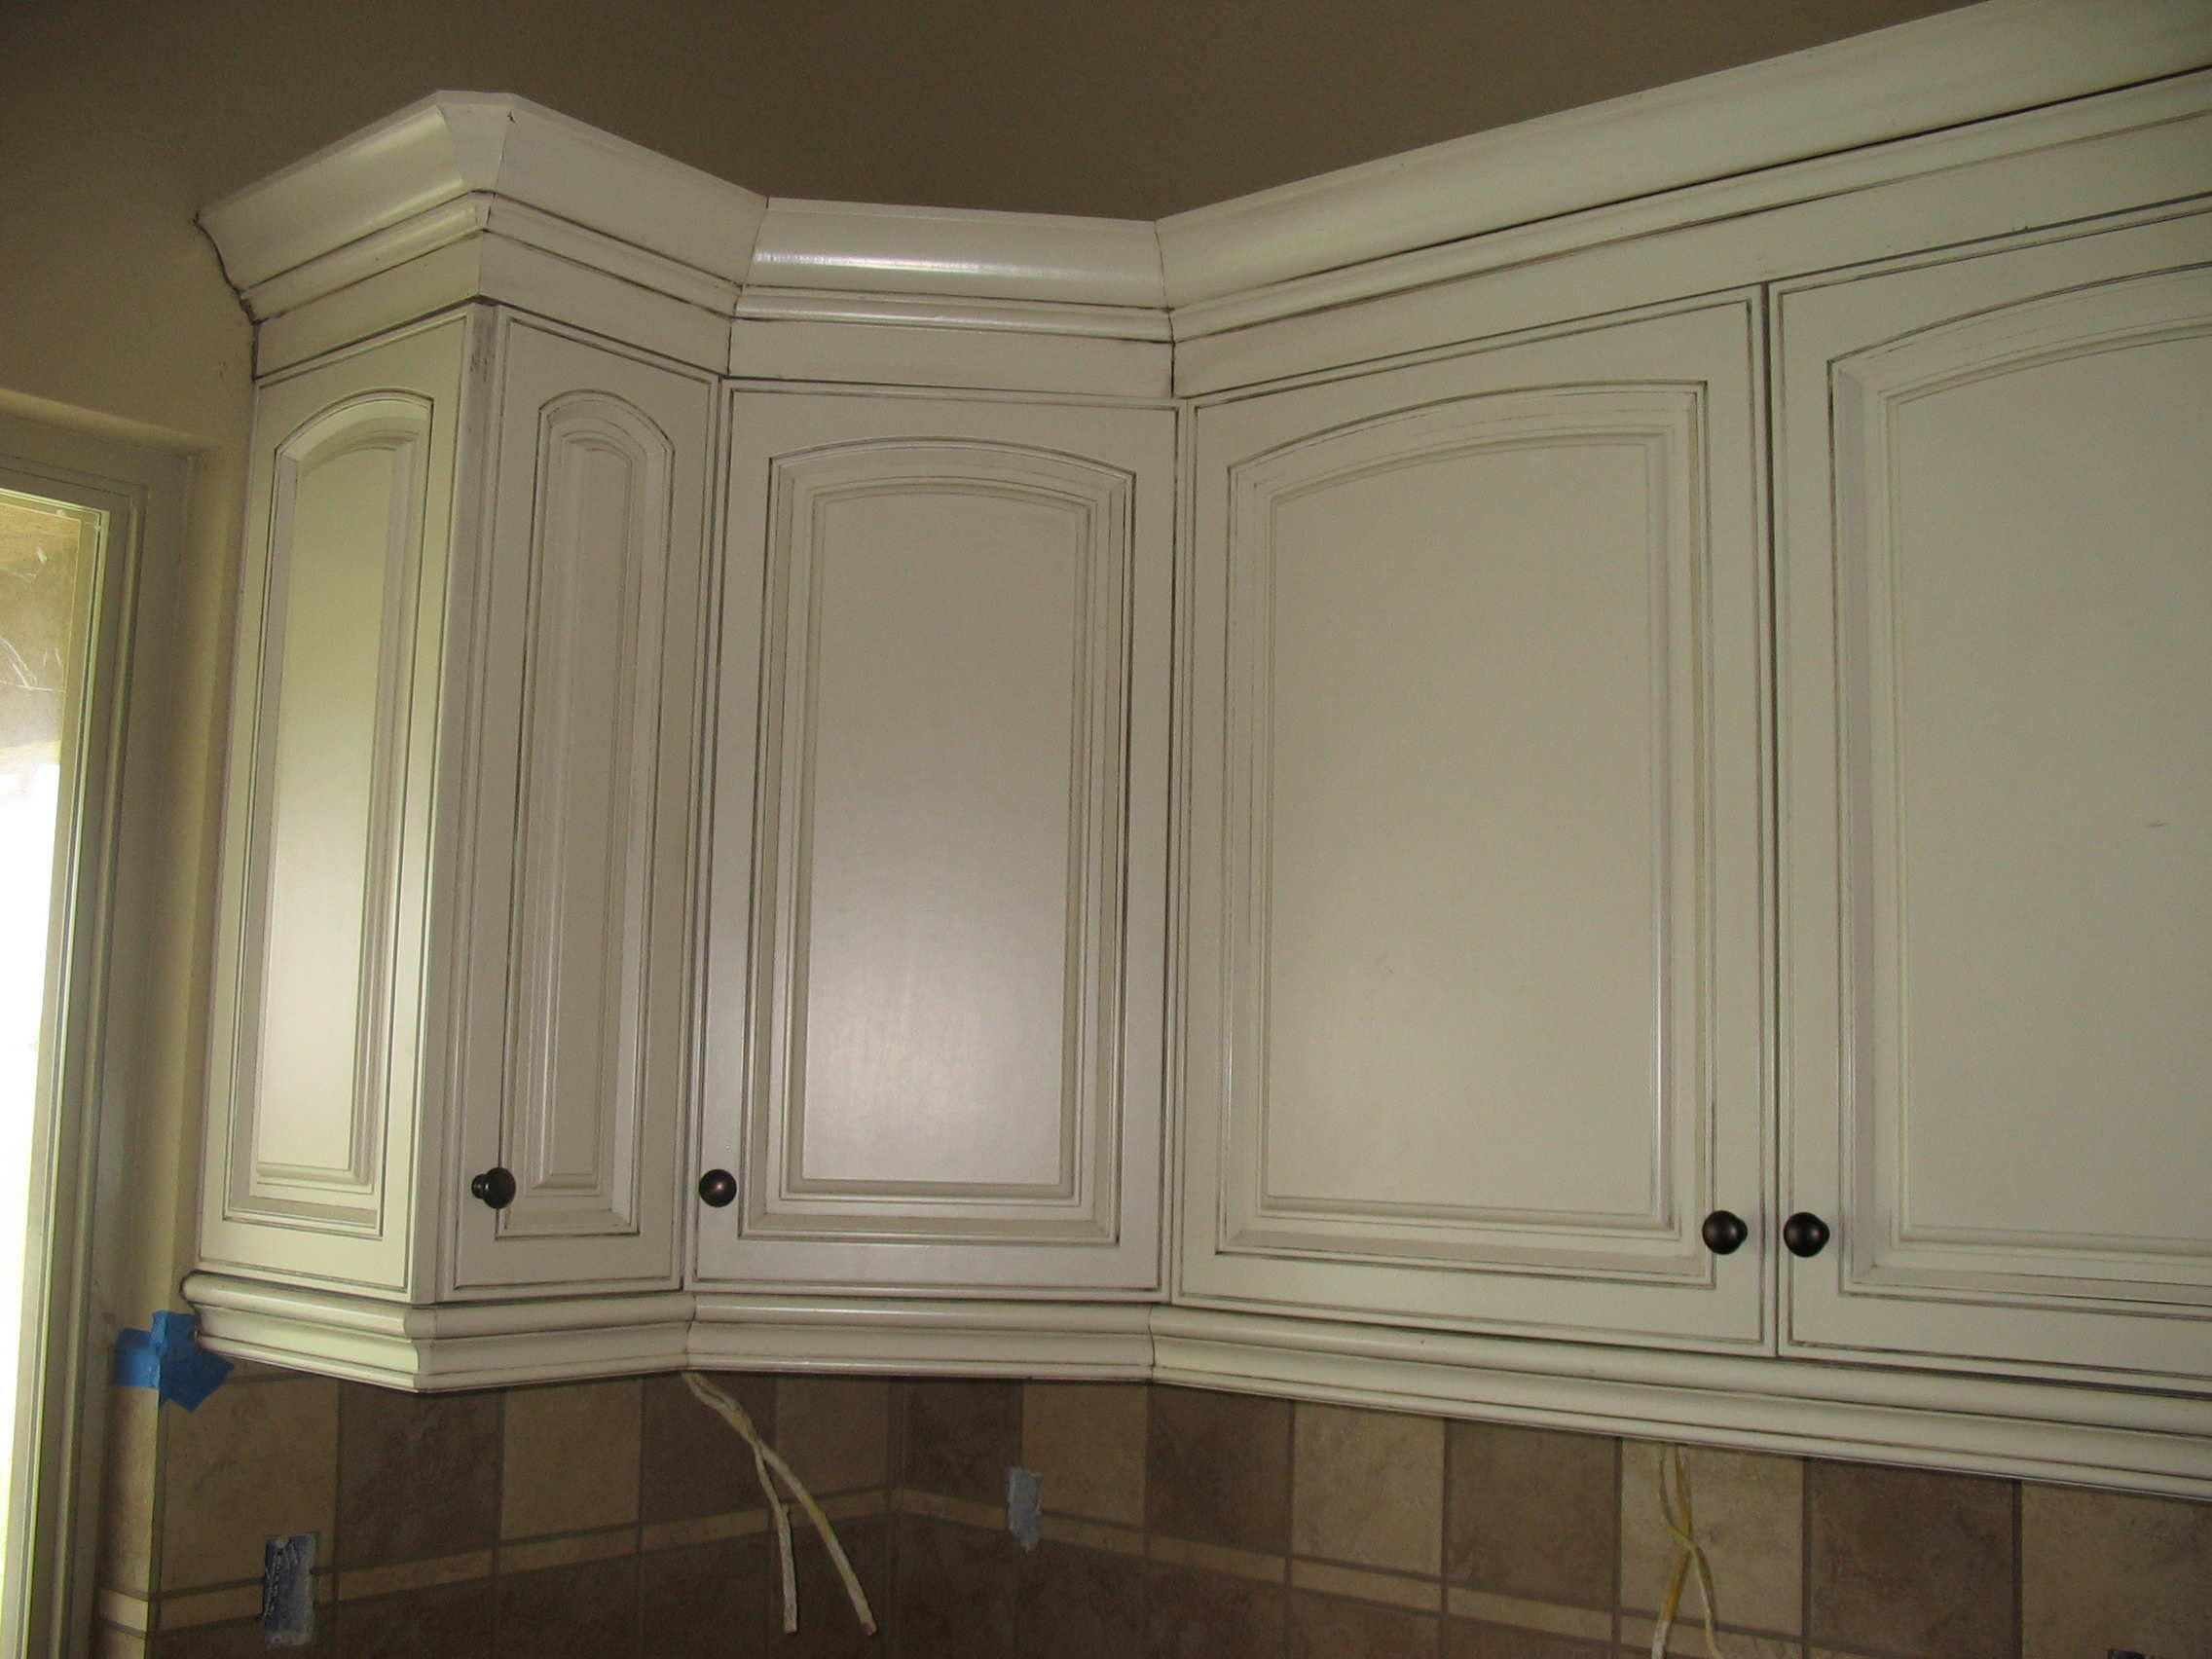 images of cabinets stained white justdotchristina  blog archive